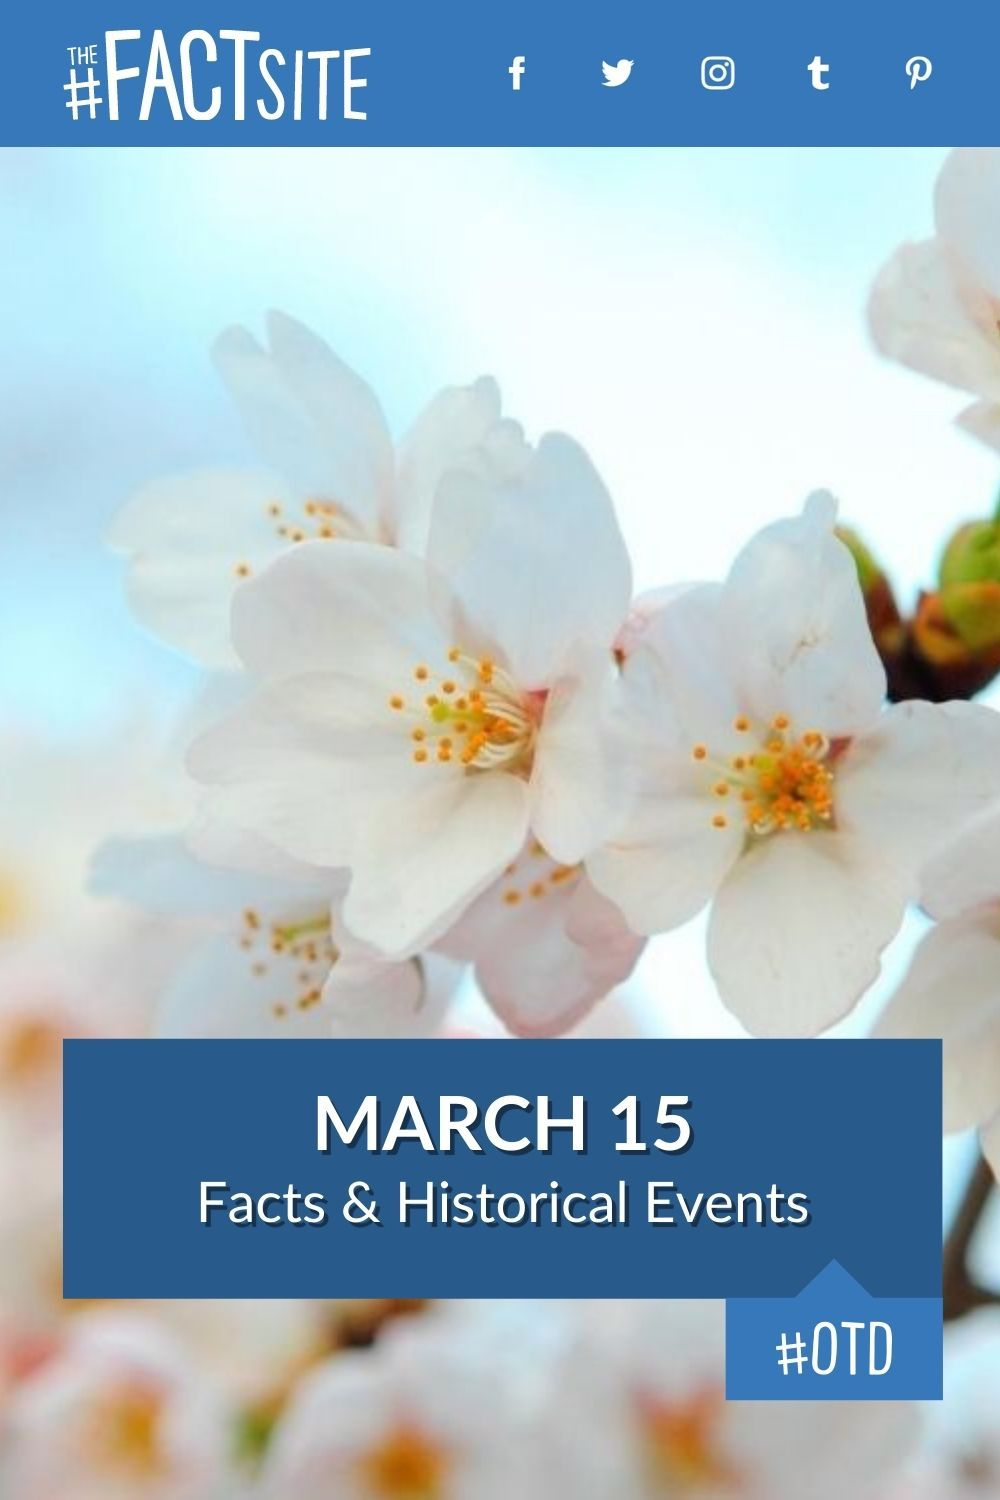 Facts & Historic Events That Happened on March 15